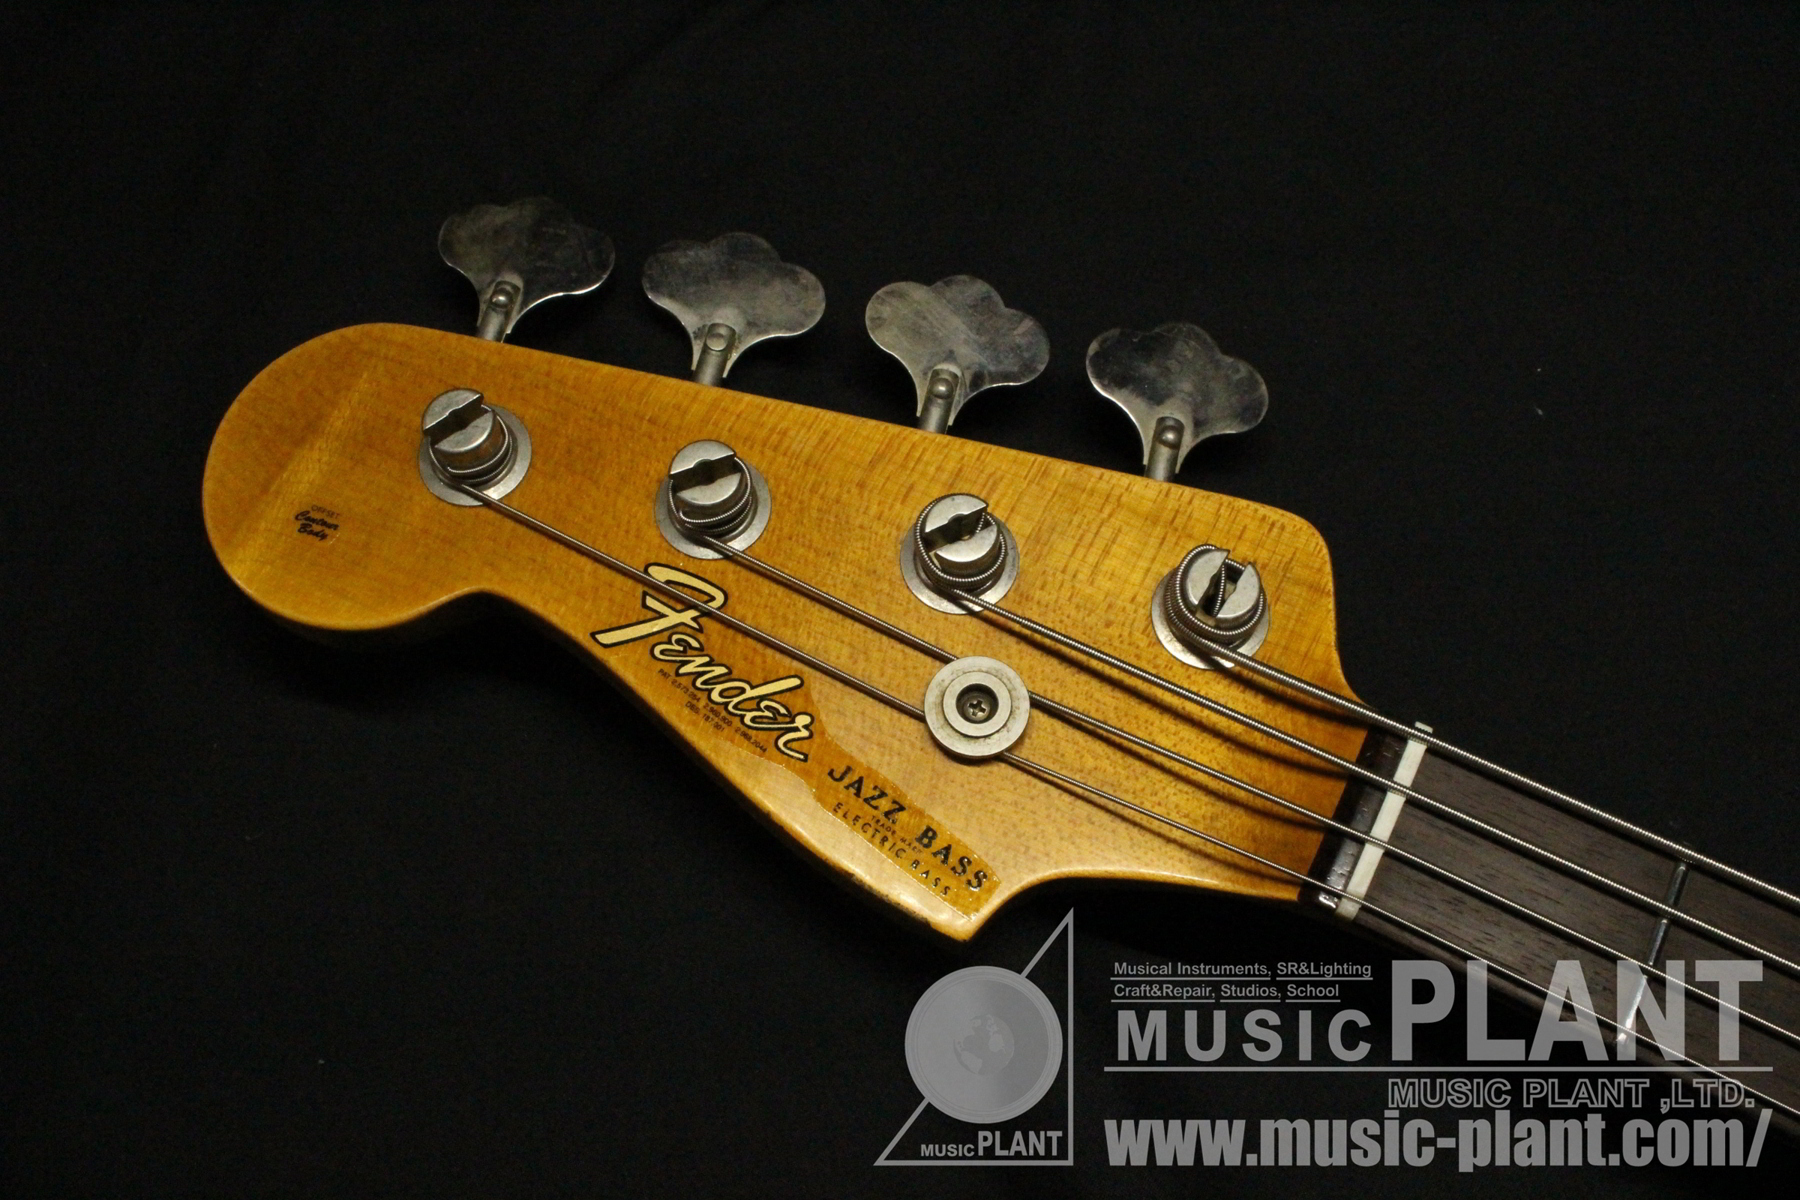 2019 NAMM Limited Edition 1962 Jazz Bass Journeyman Relic LH Aged Lake Placid Blueヘッド画像